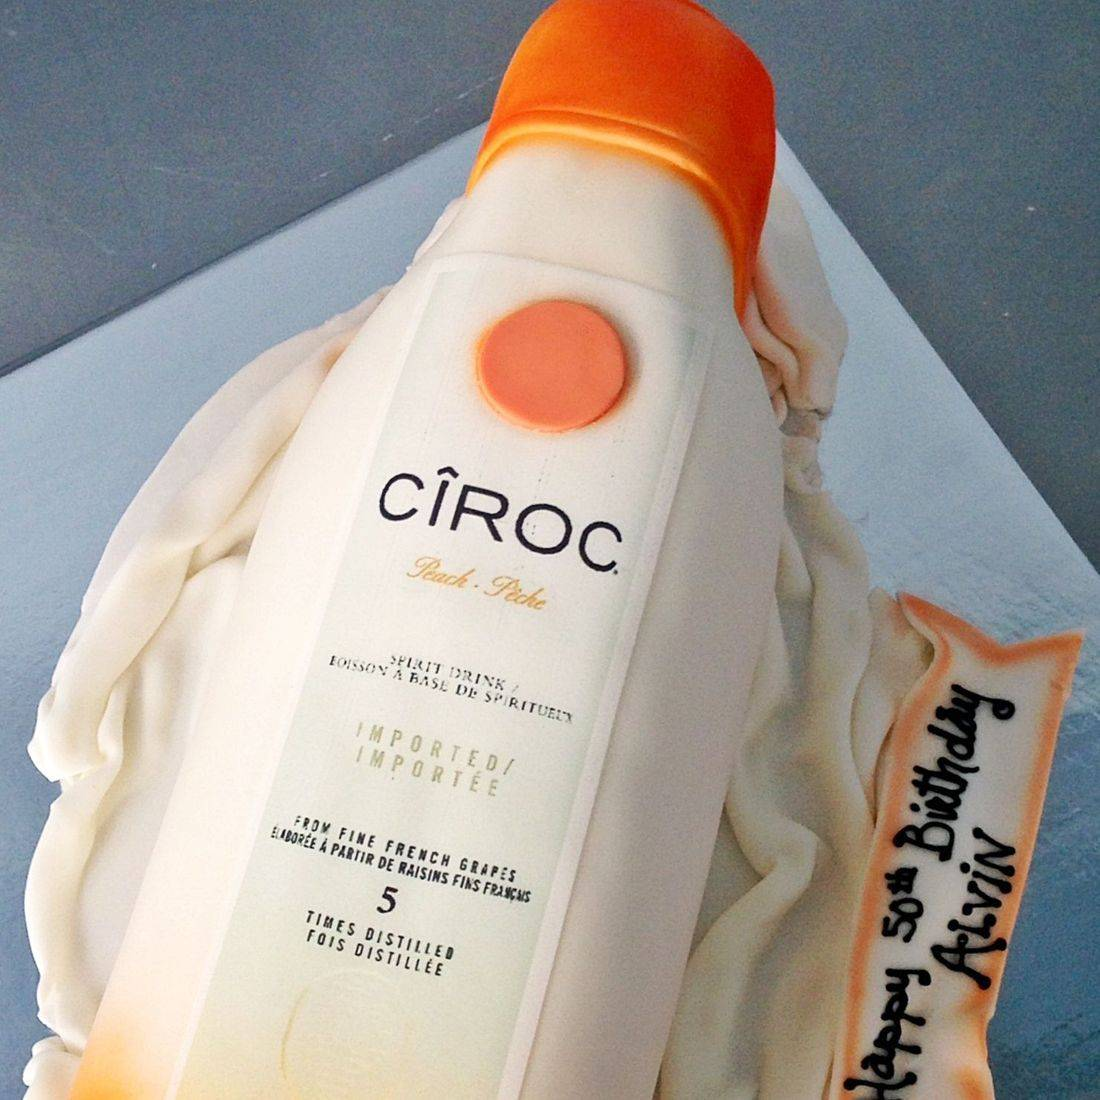 Peach Ciroc Bottle Dimensional Cake Milwaukee